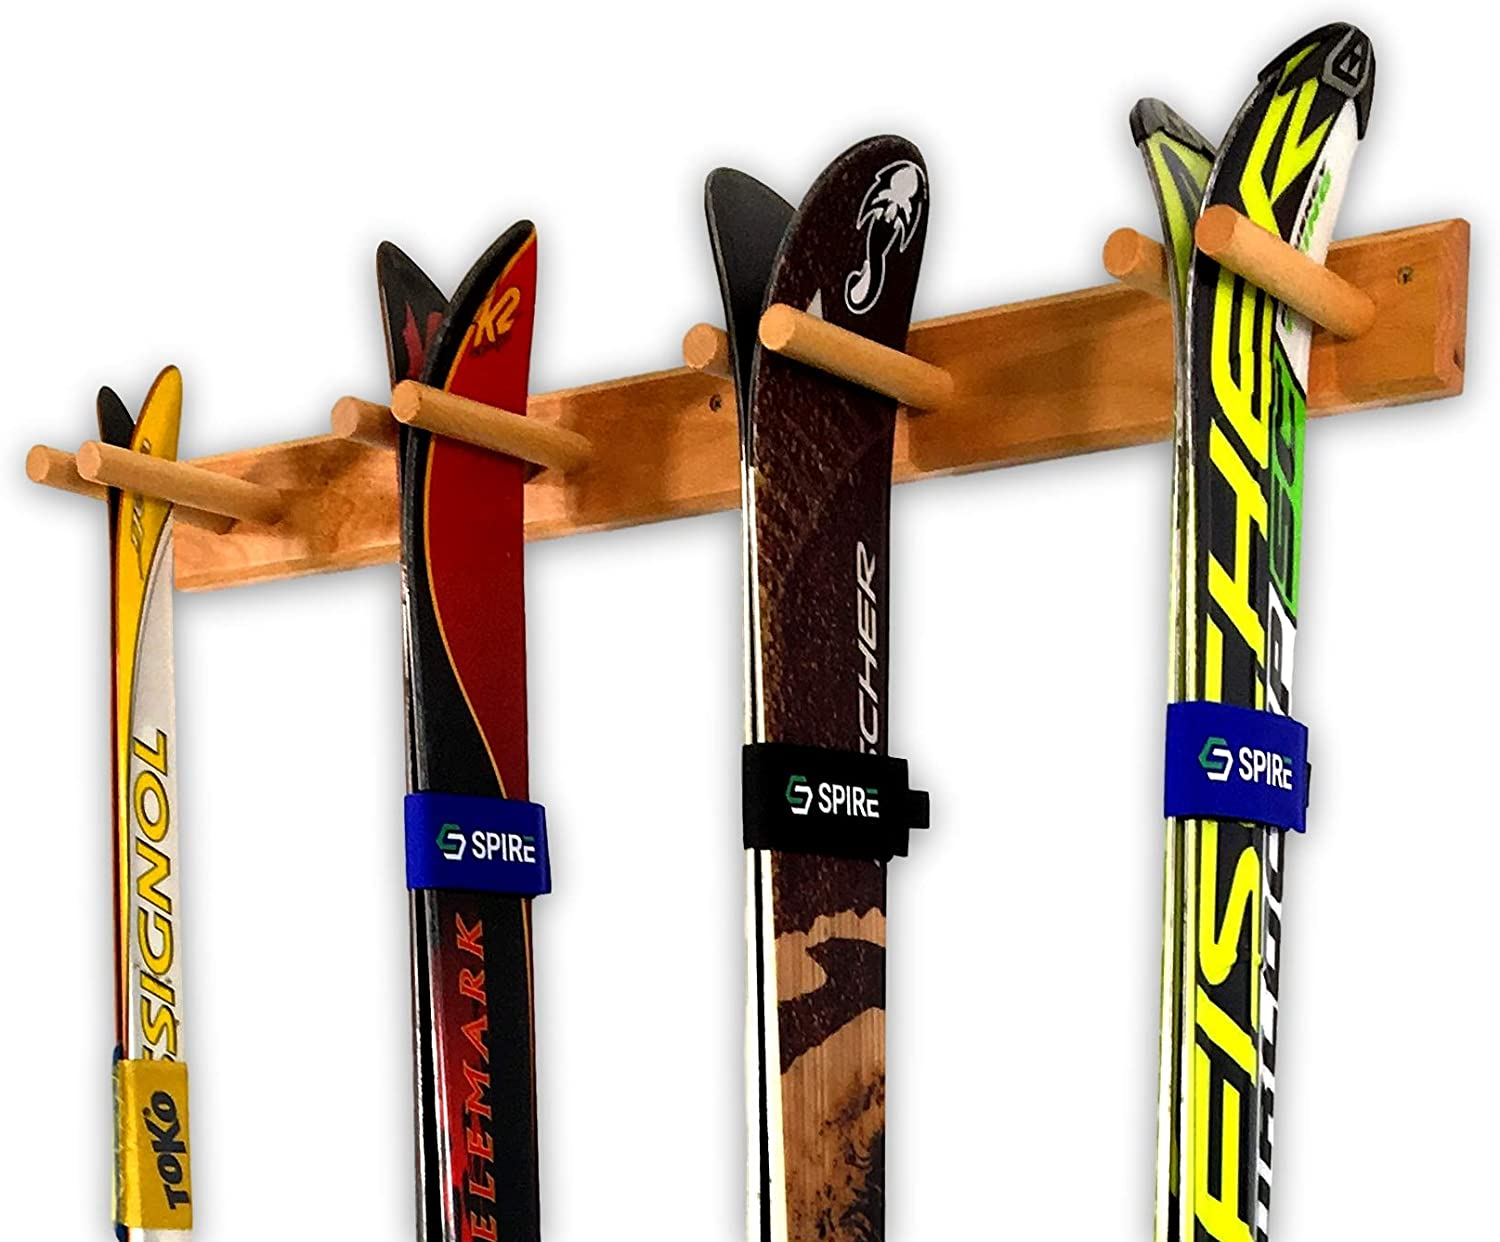 StoreYourBoard Timber Ski Wall Rack, 4 Pairs of Skis Storage, Wood Home and Garage Mount System